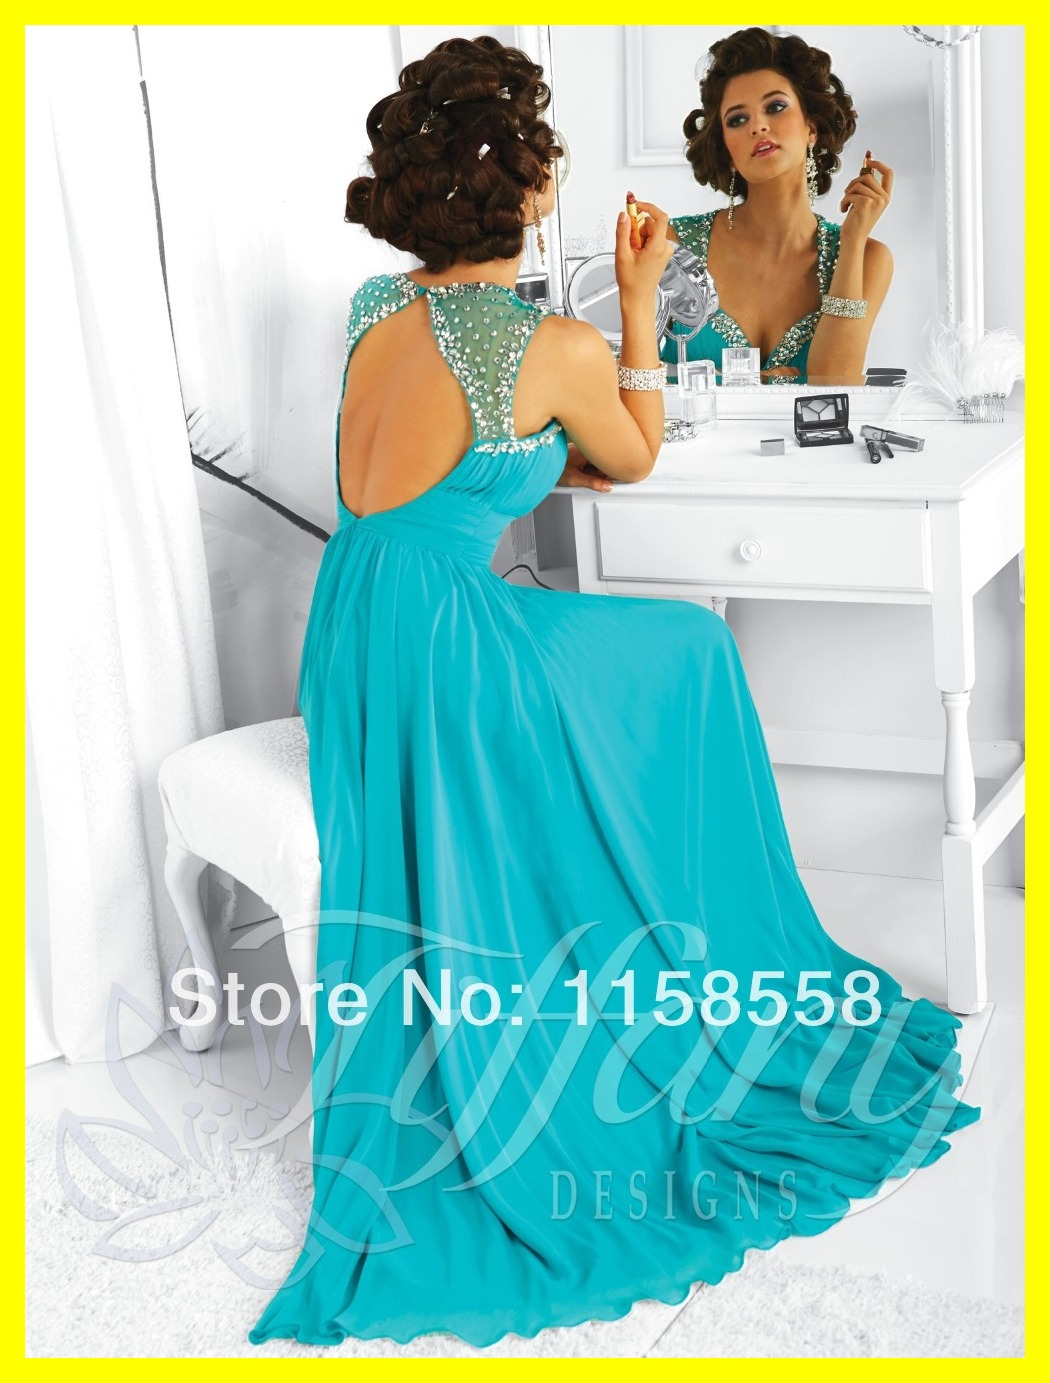 Prom dresses on sale cheap designer dress stores in dallas How to get cheap designer clothes